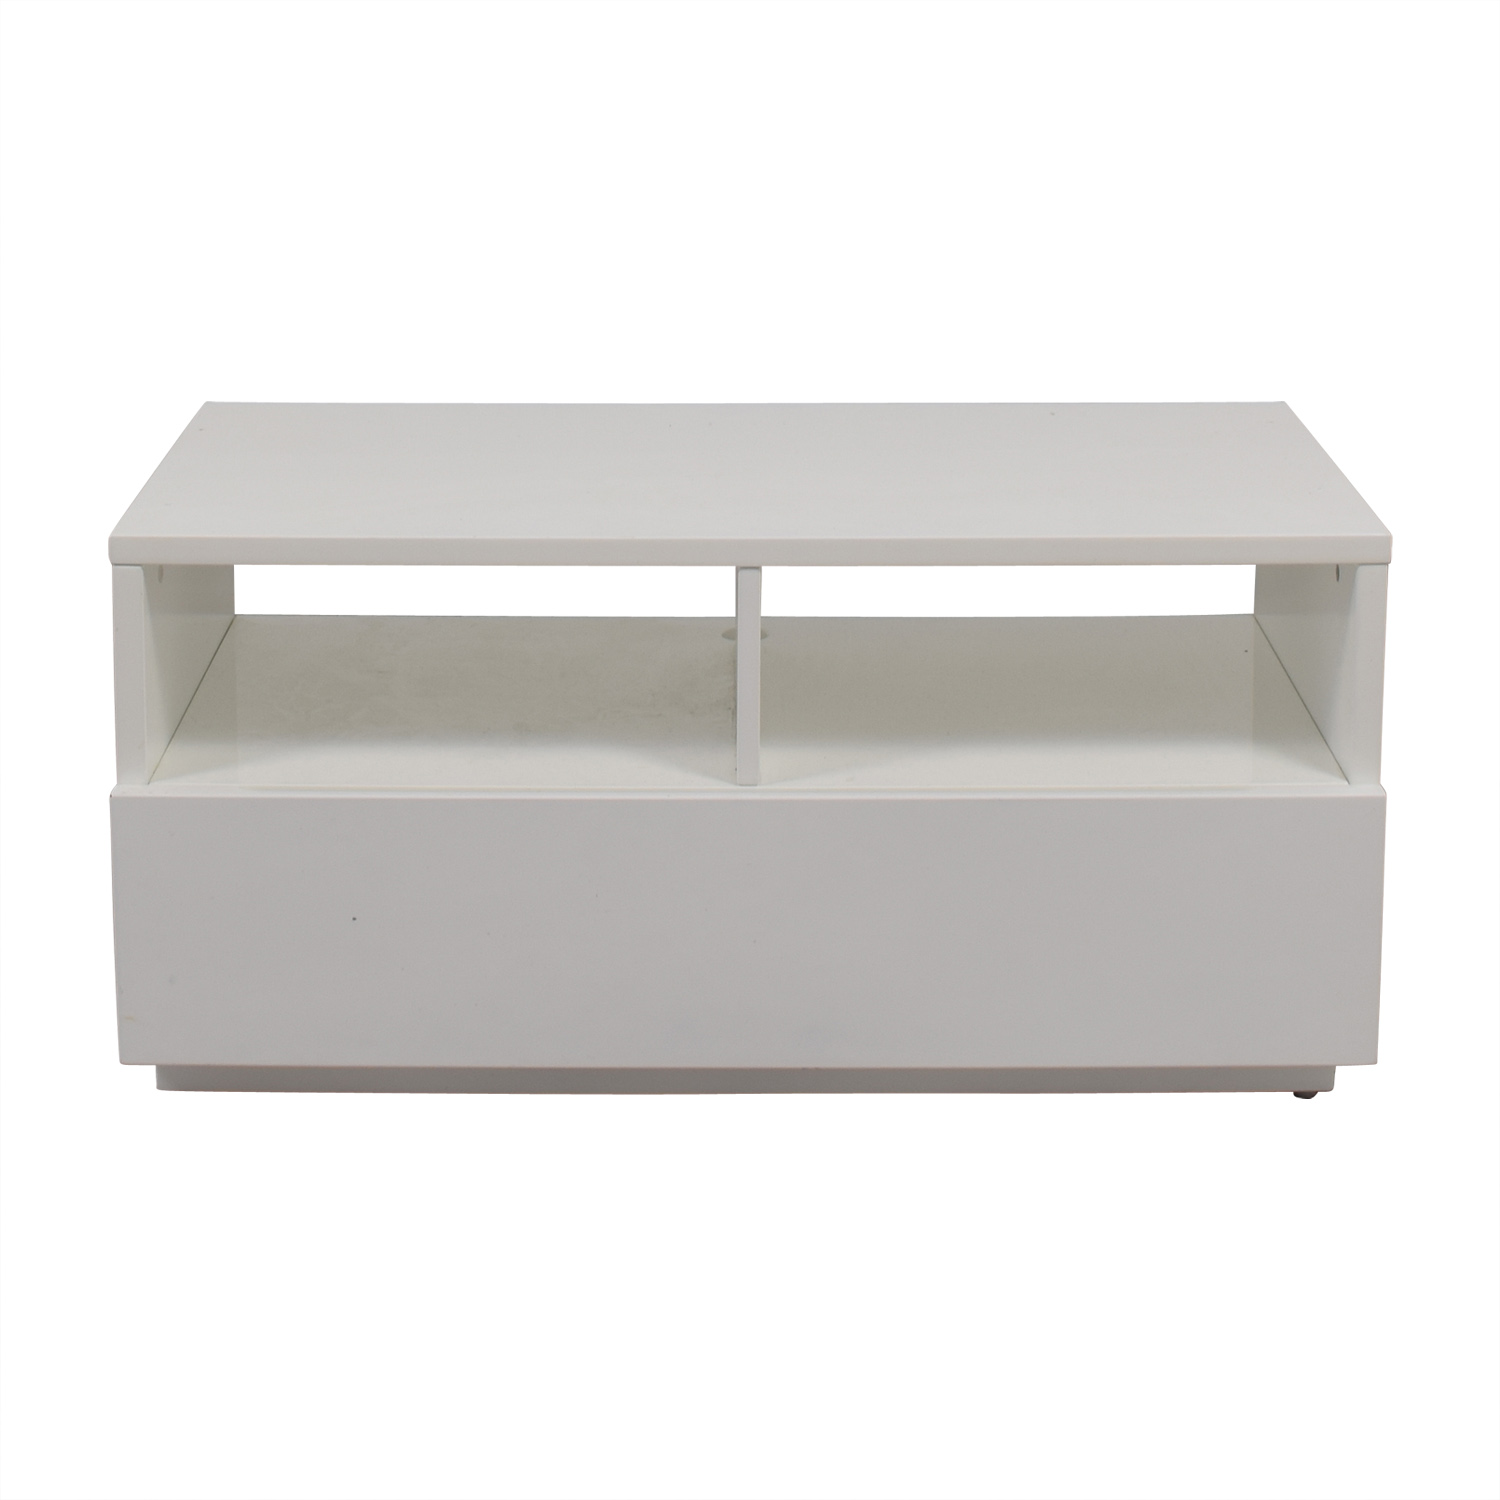 Shop Cb2 Chill White Media Console Cb2 Storage